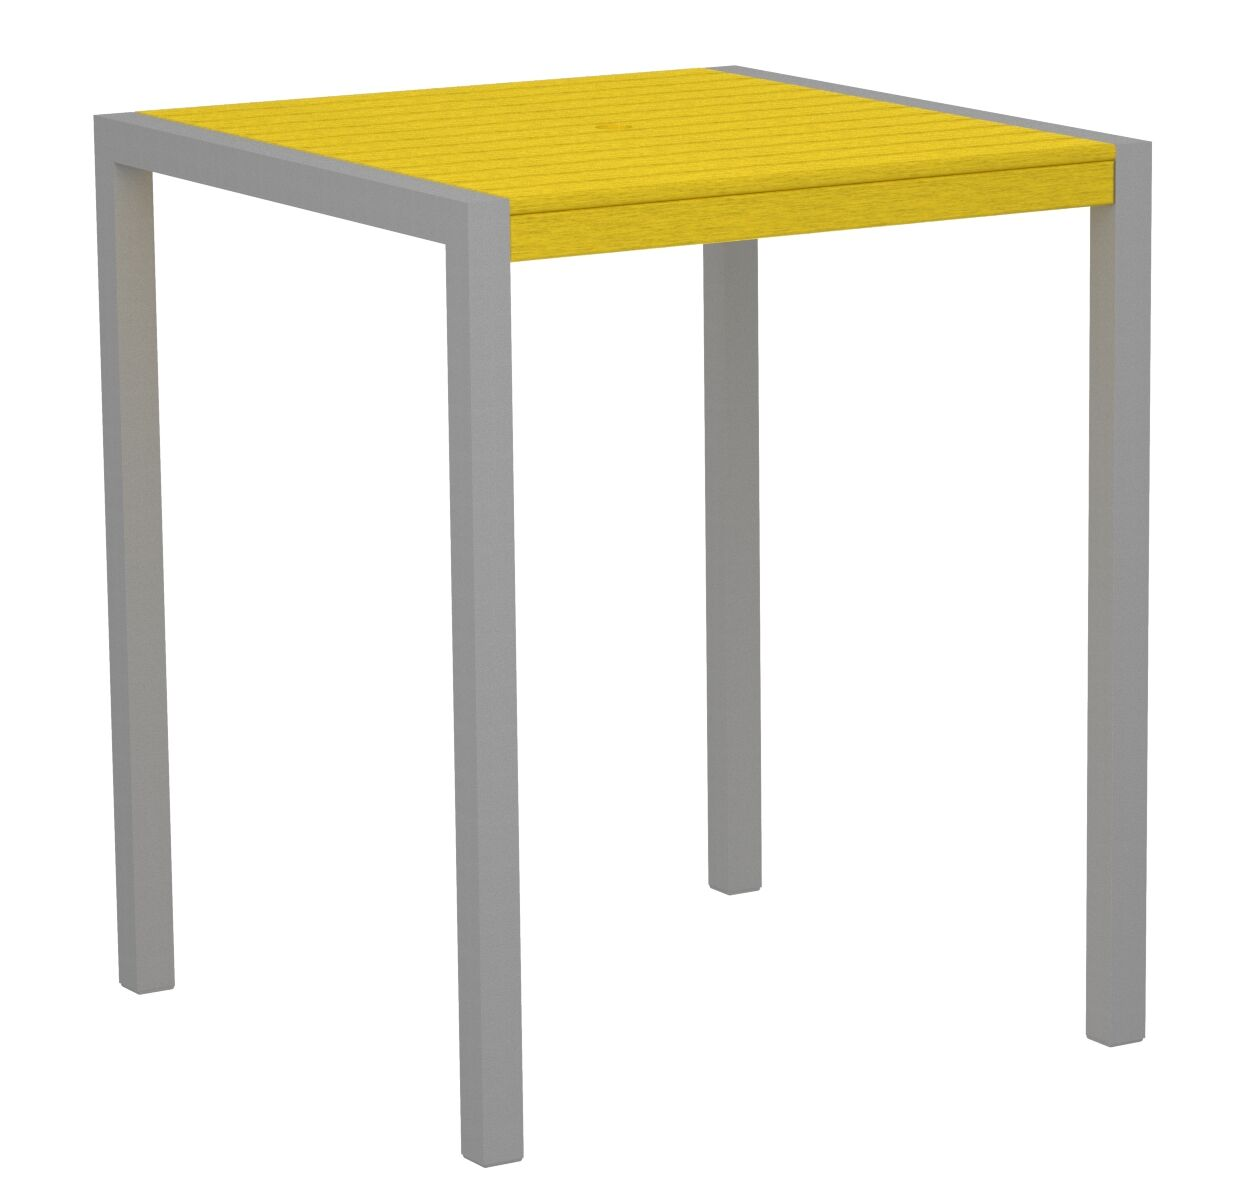 Mod Bar Table Base Finish: Textured Silver, Top Finish: Lemon